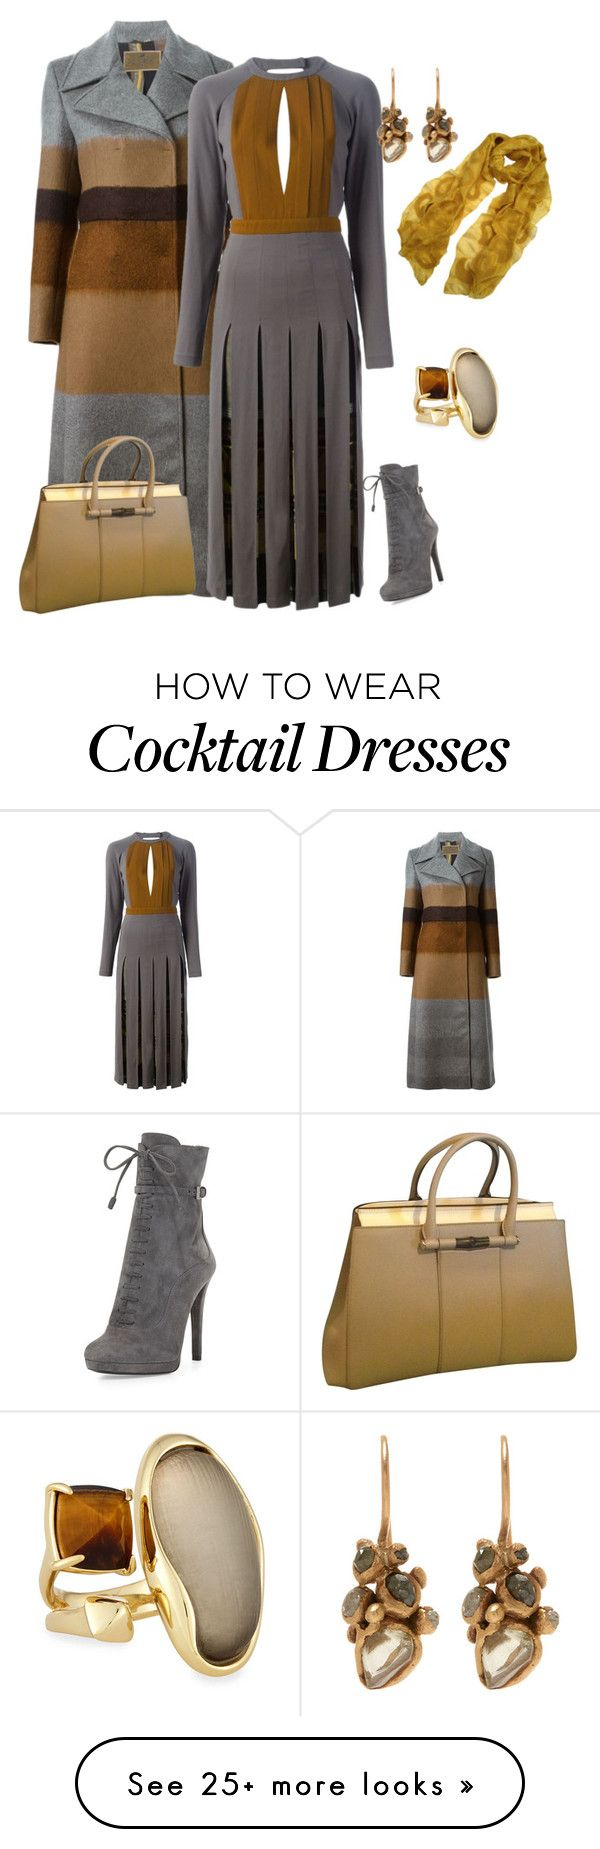 """outfit 2595"" by natalyag on Polyvore featuring Alexis Bittar, Etro, Gucci, Ruth Tomlinson, Prada and Sujuu"